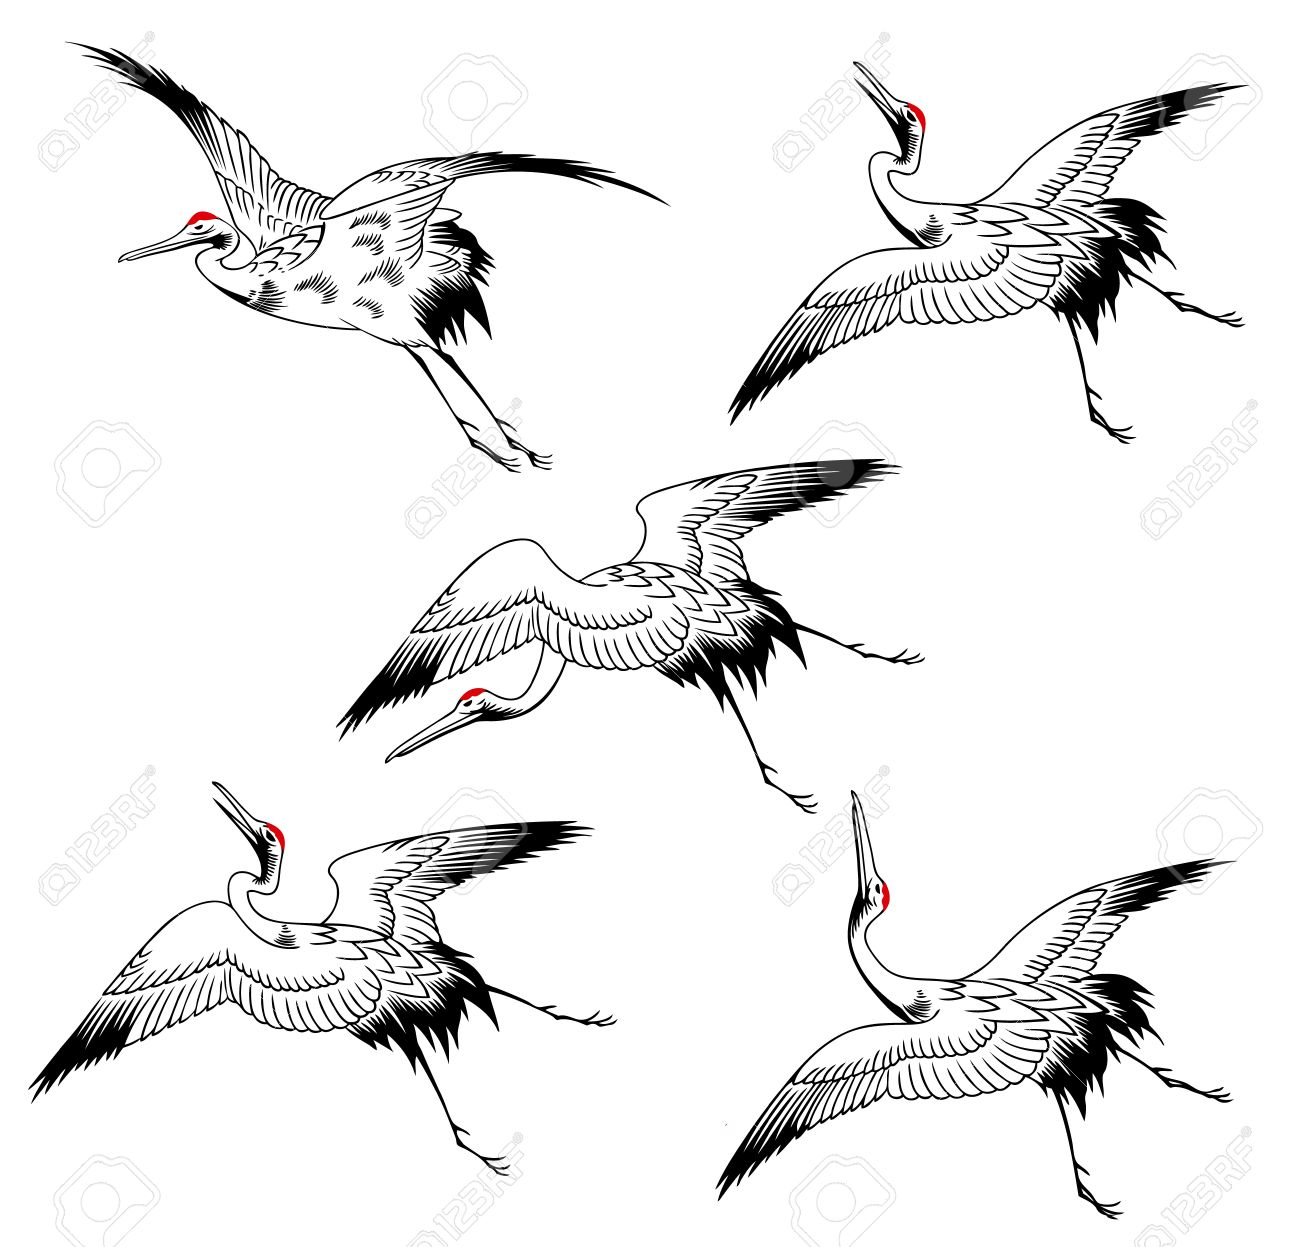 Japanese Crane clipart #10, Download drawings